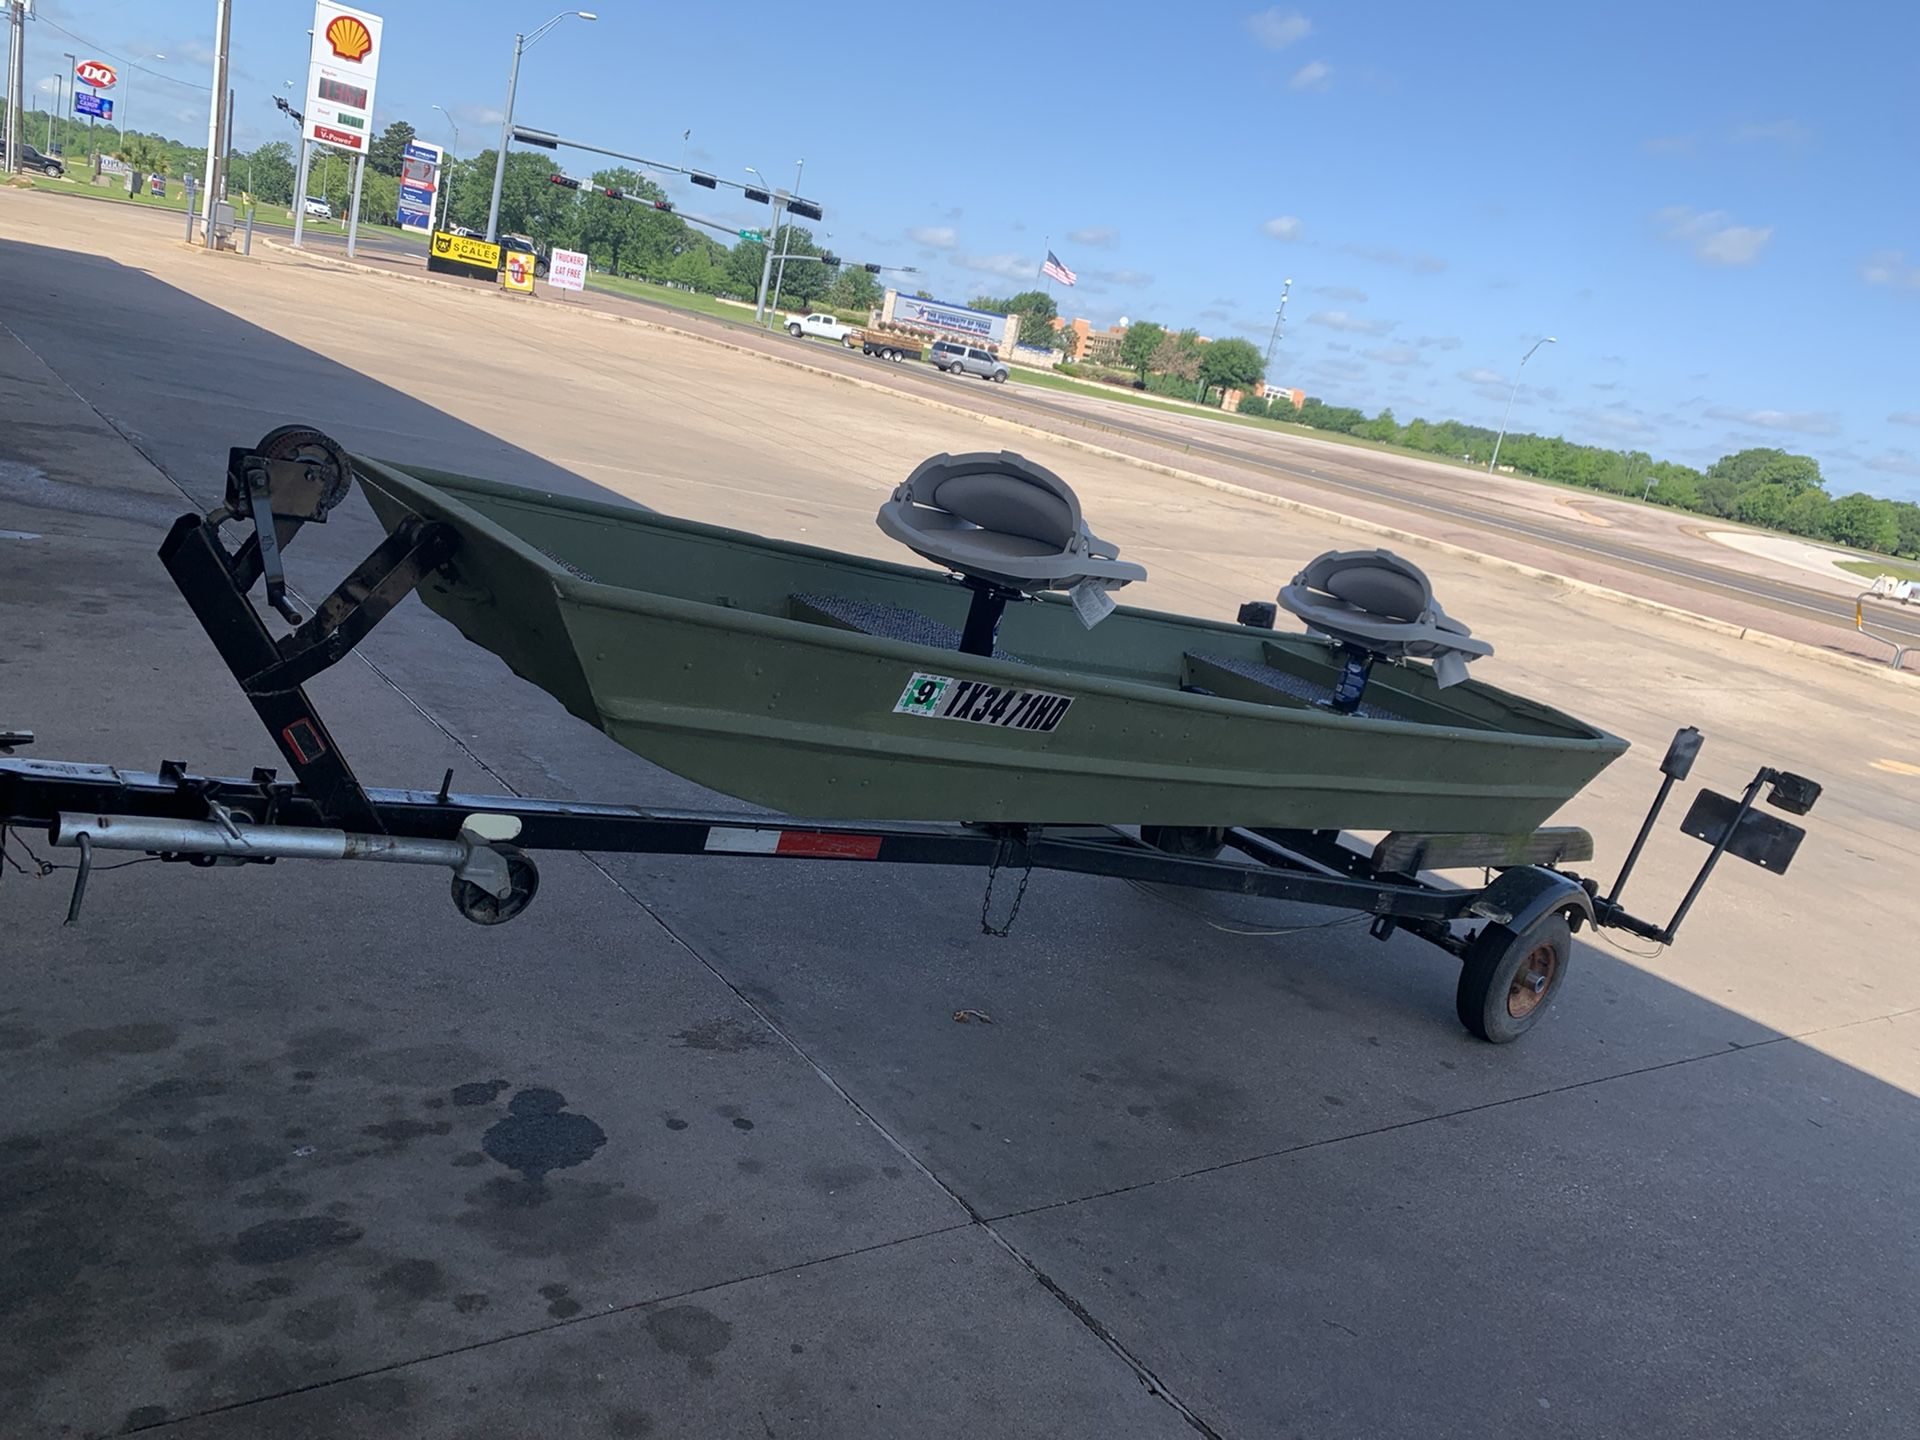 10ft john boat with trailer, trolly and 20mph motor. Clean title